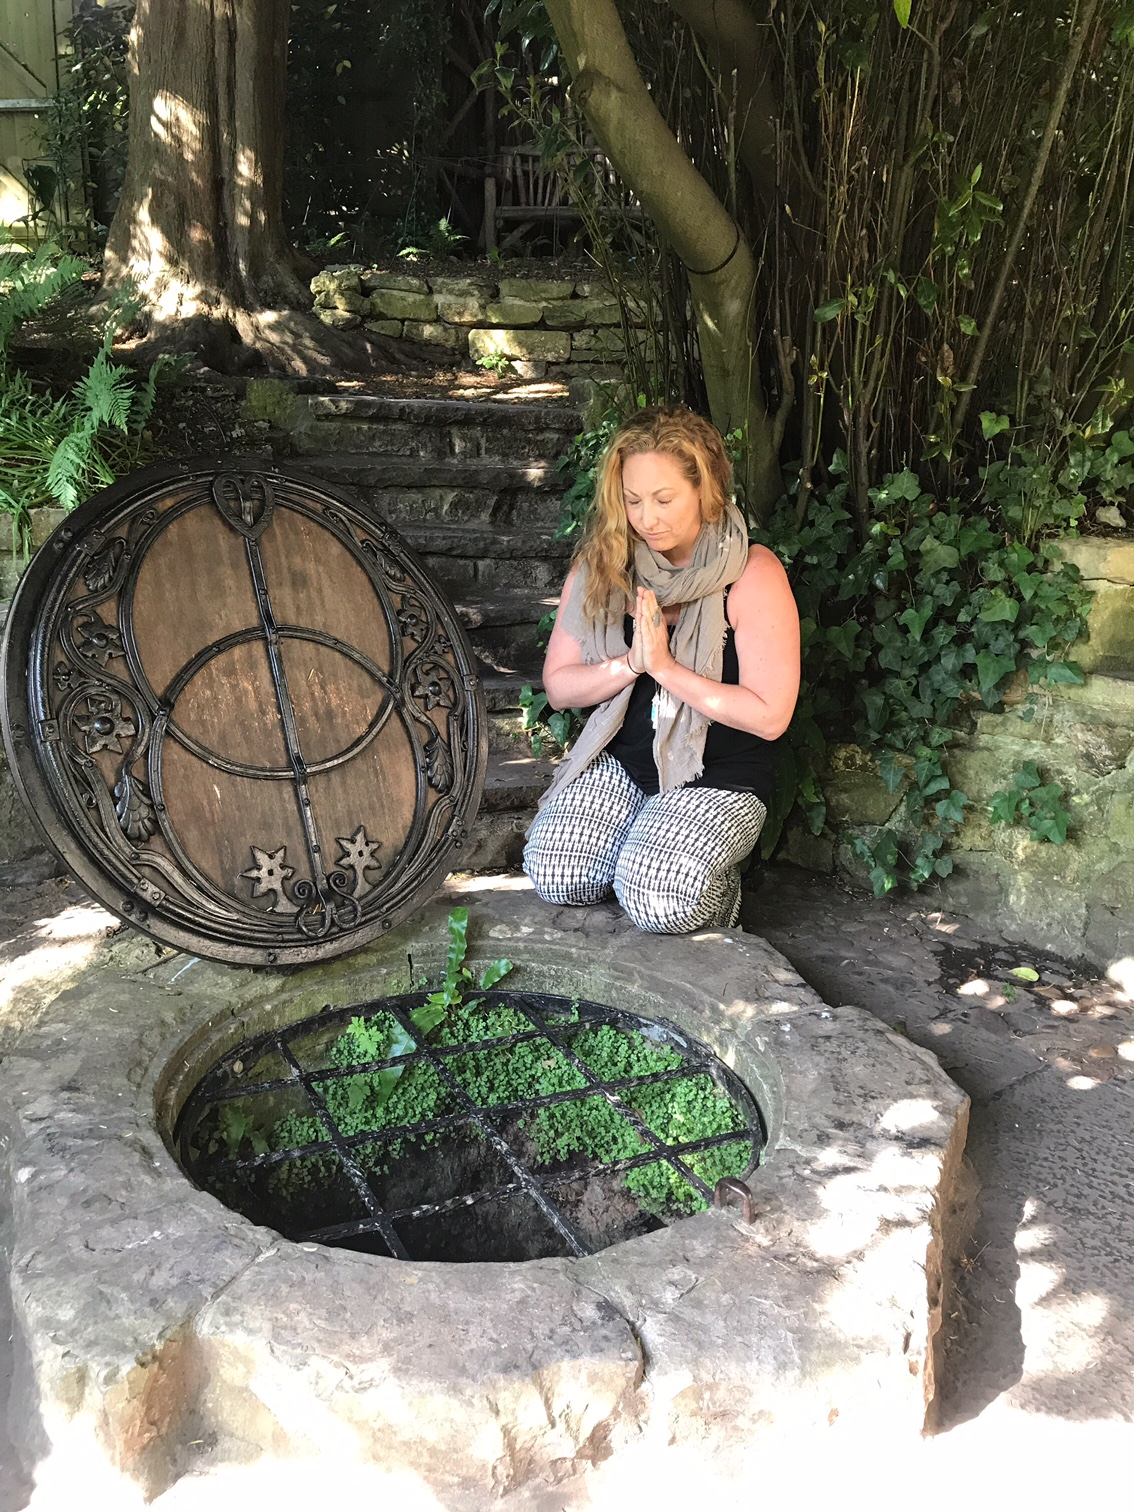 Me at the chalice well in Glastonbury, England, also known as Avalon.